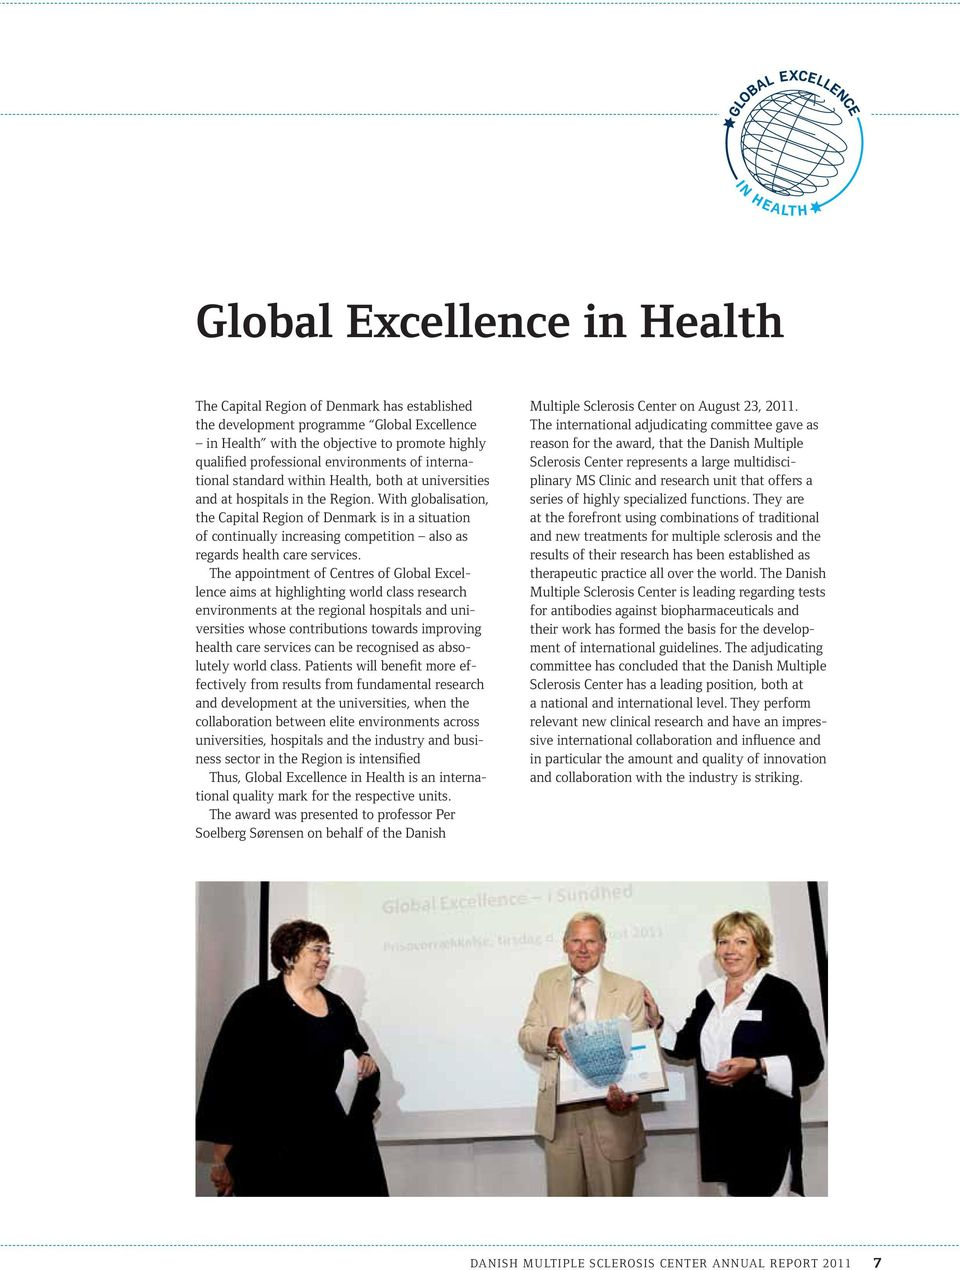 With globalisation, the Capital Region of Denmark is in a situation of continually increasing competition also as regards health care services.